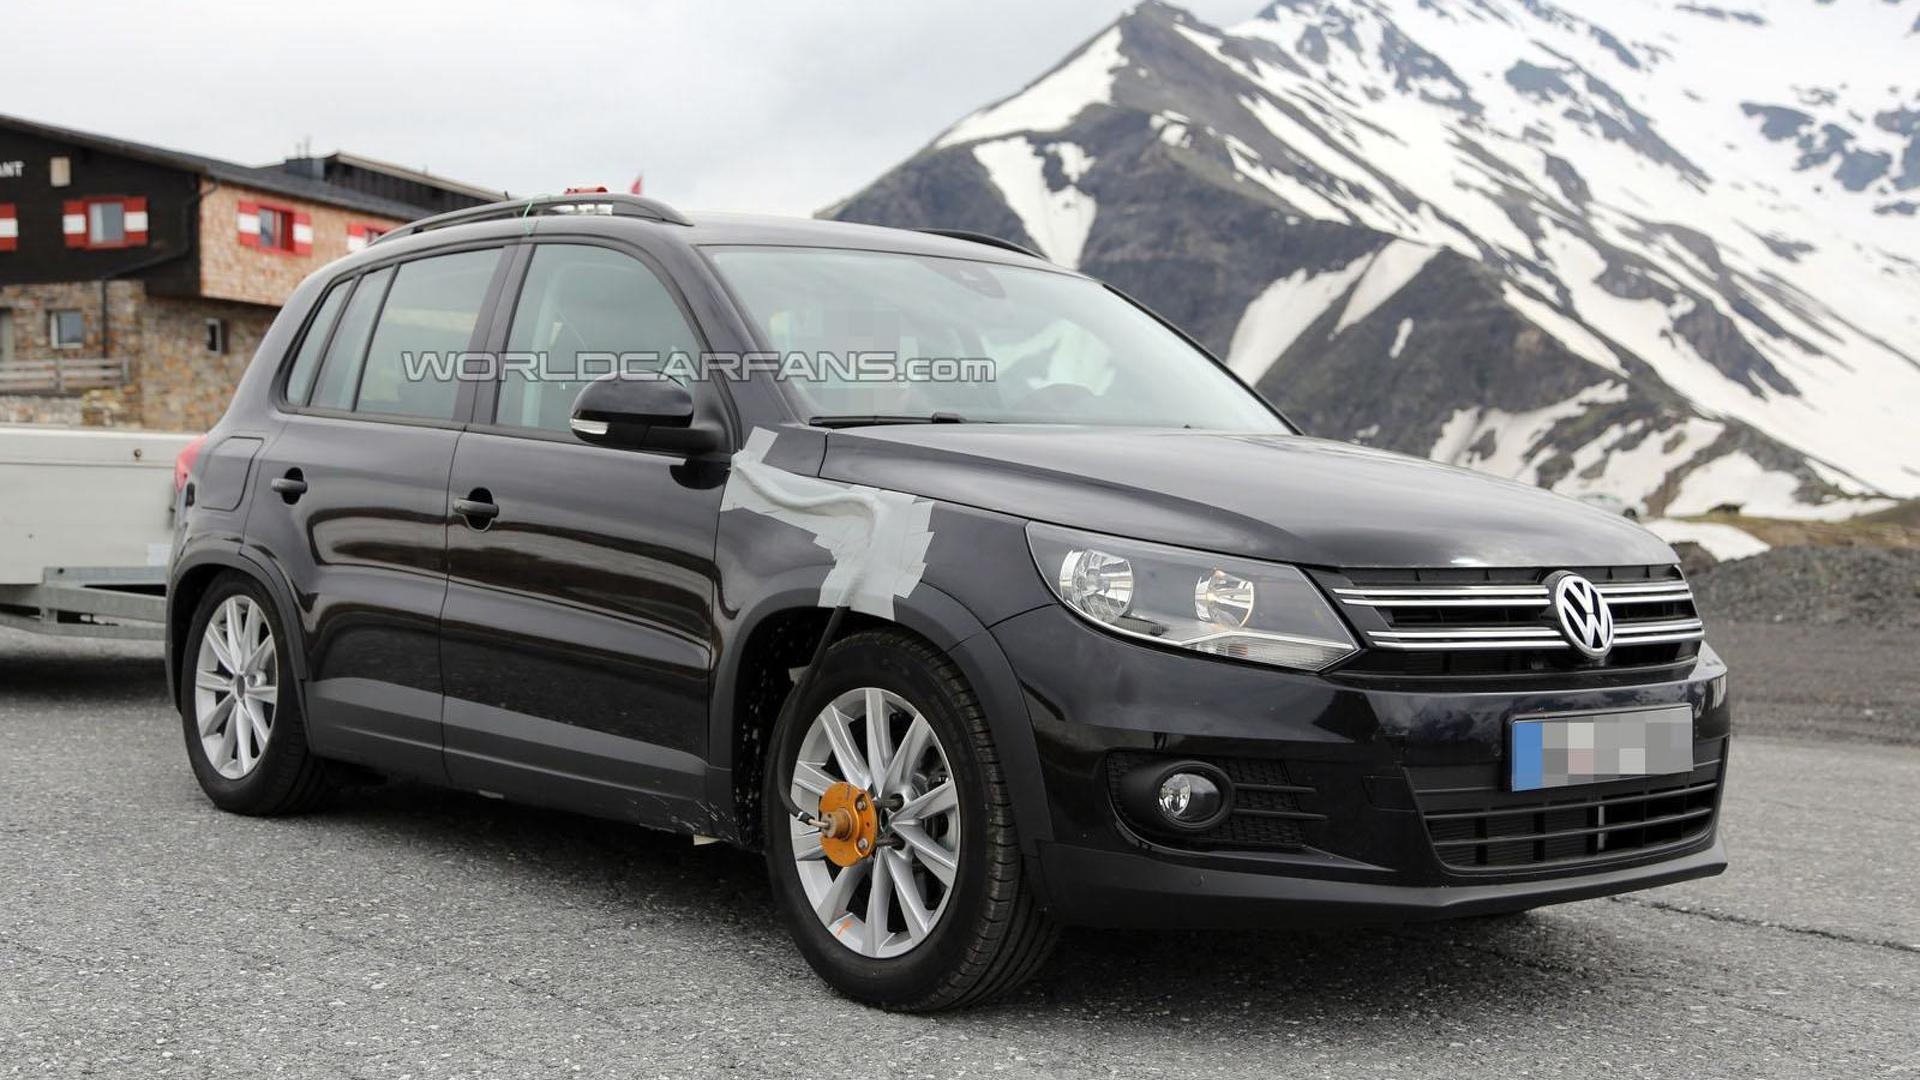 Volkswagen working on five- and seven-seat Tiguan variants – report